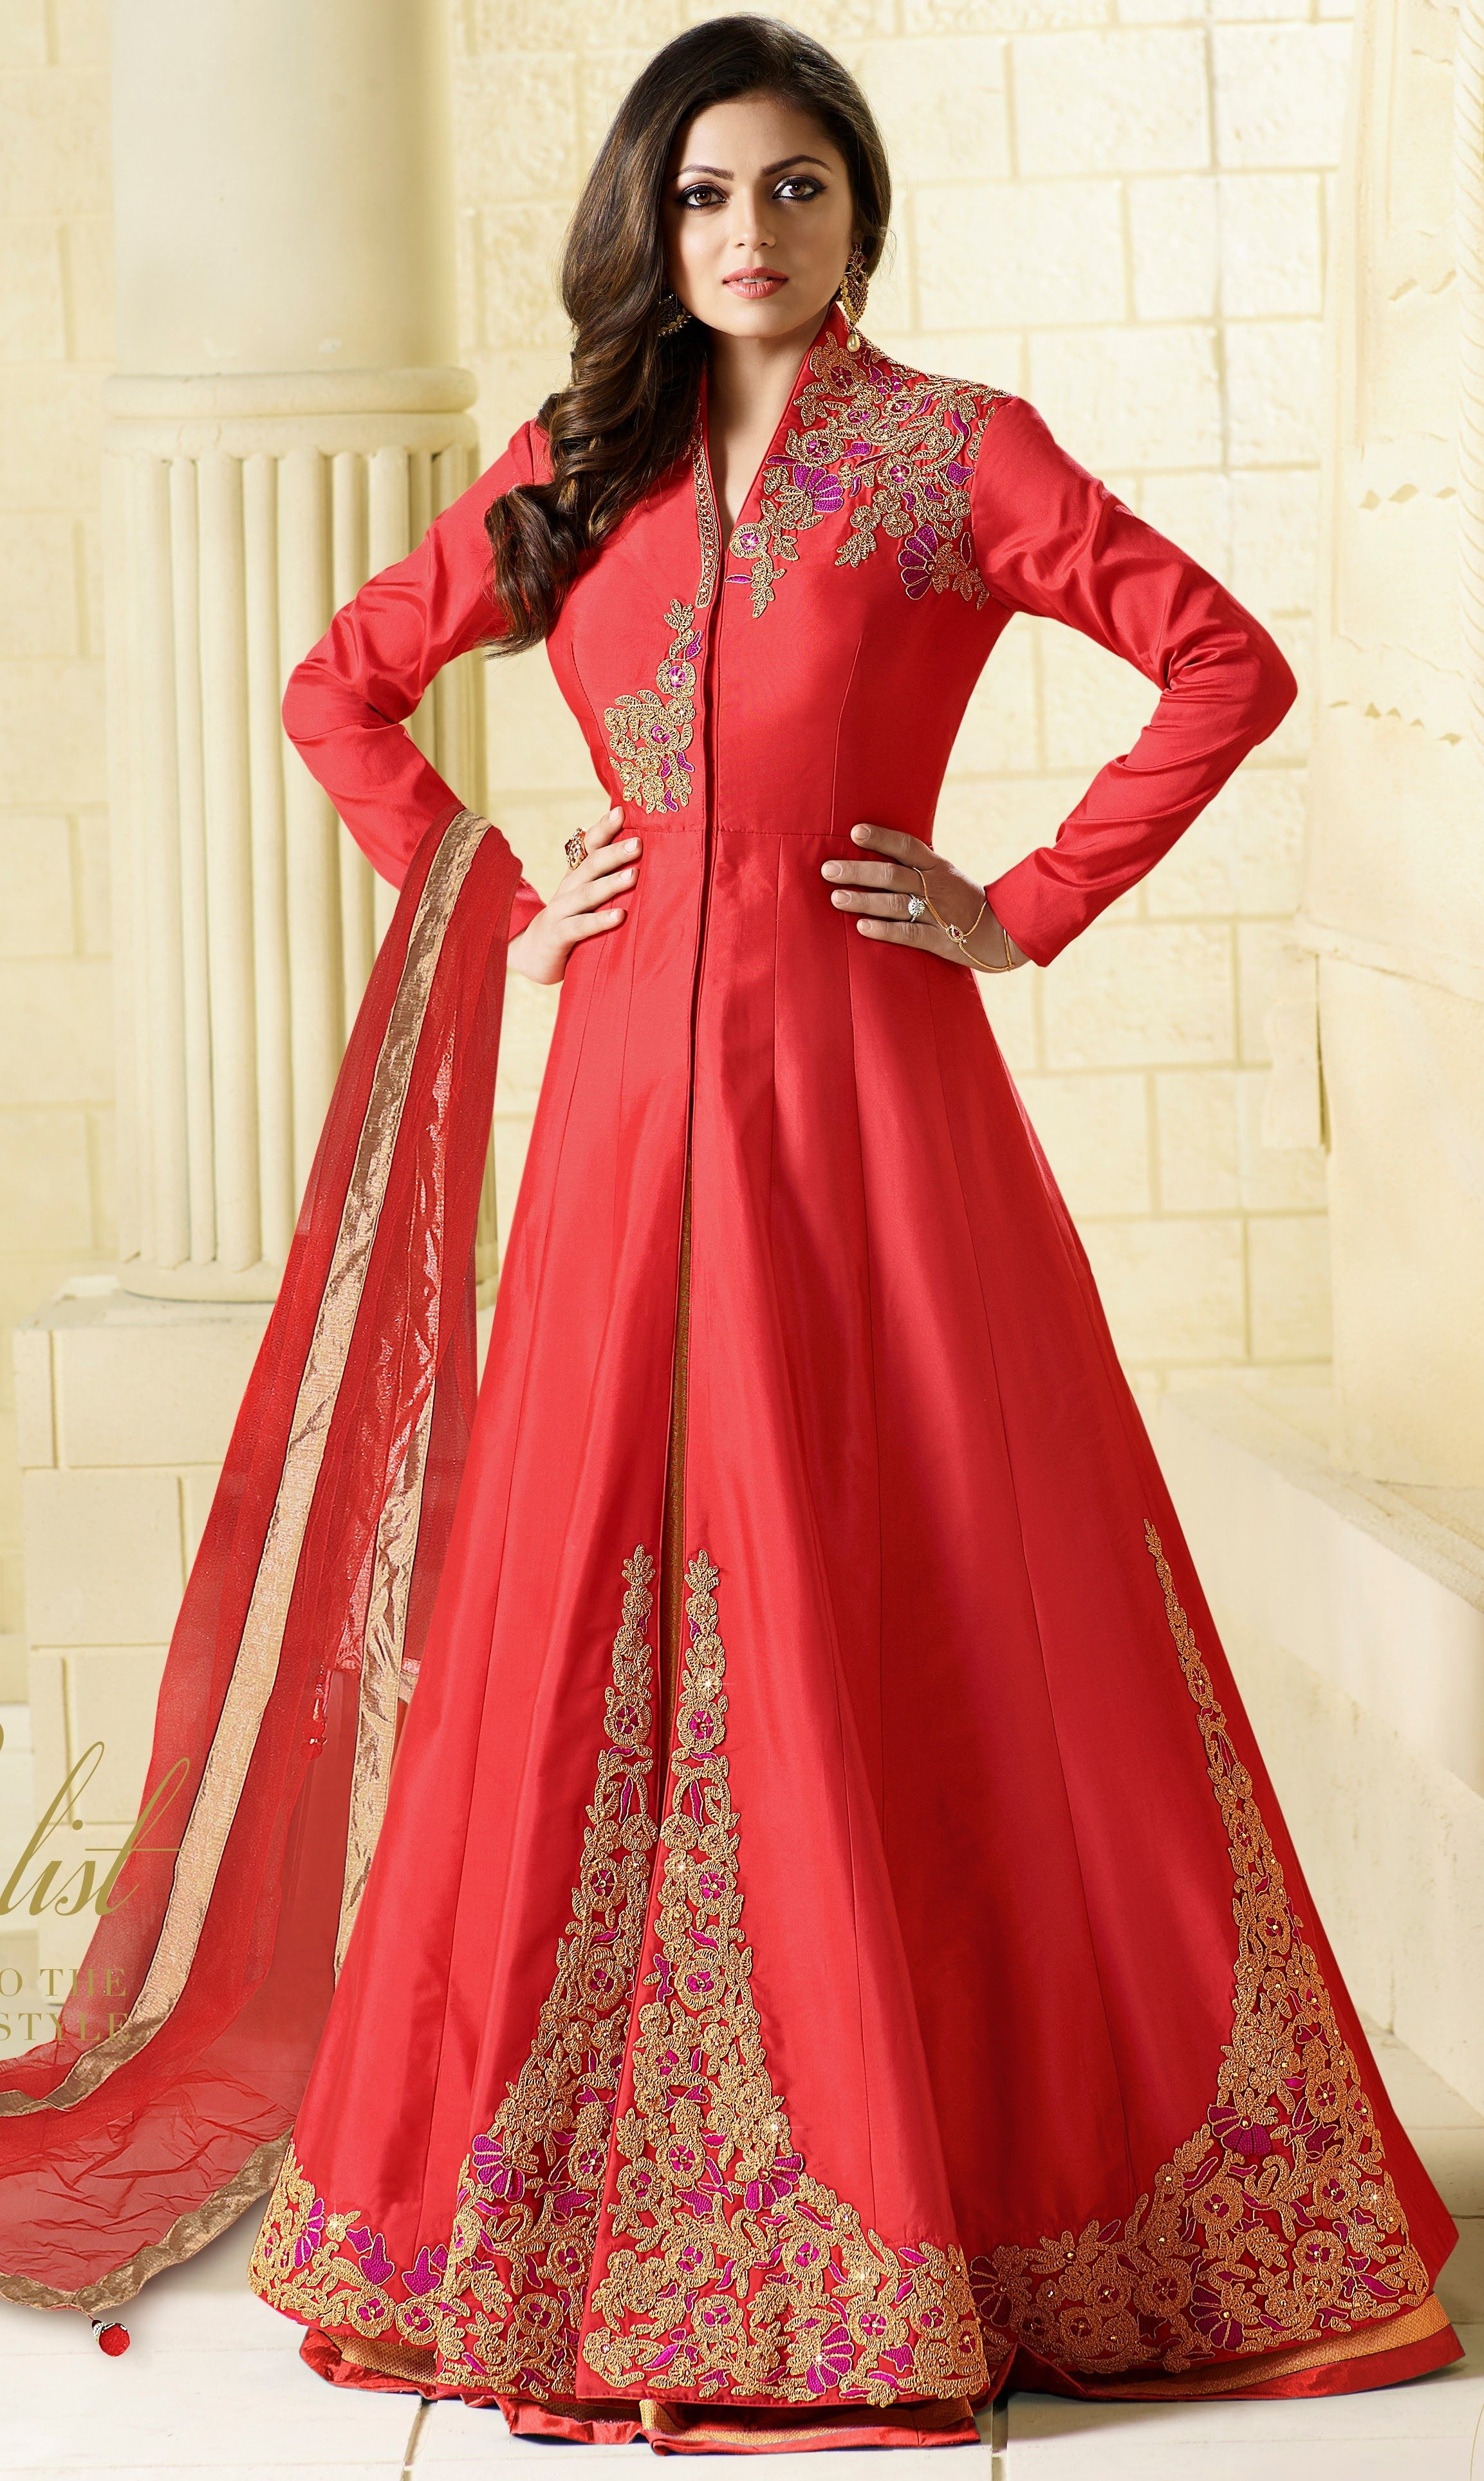 Red heavy bridal anarkali frock 7 suitanarkali in - Drashti Dhami Red Silk Floor Length Anarkali Suit With Zari And Stone Work With Back Work